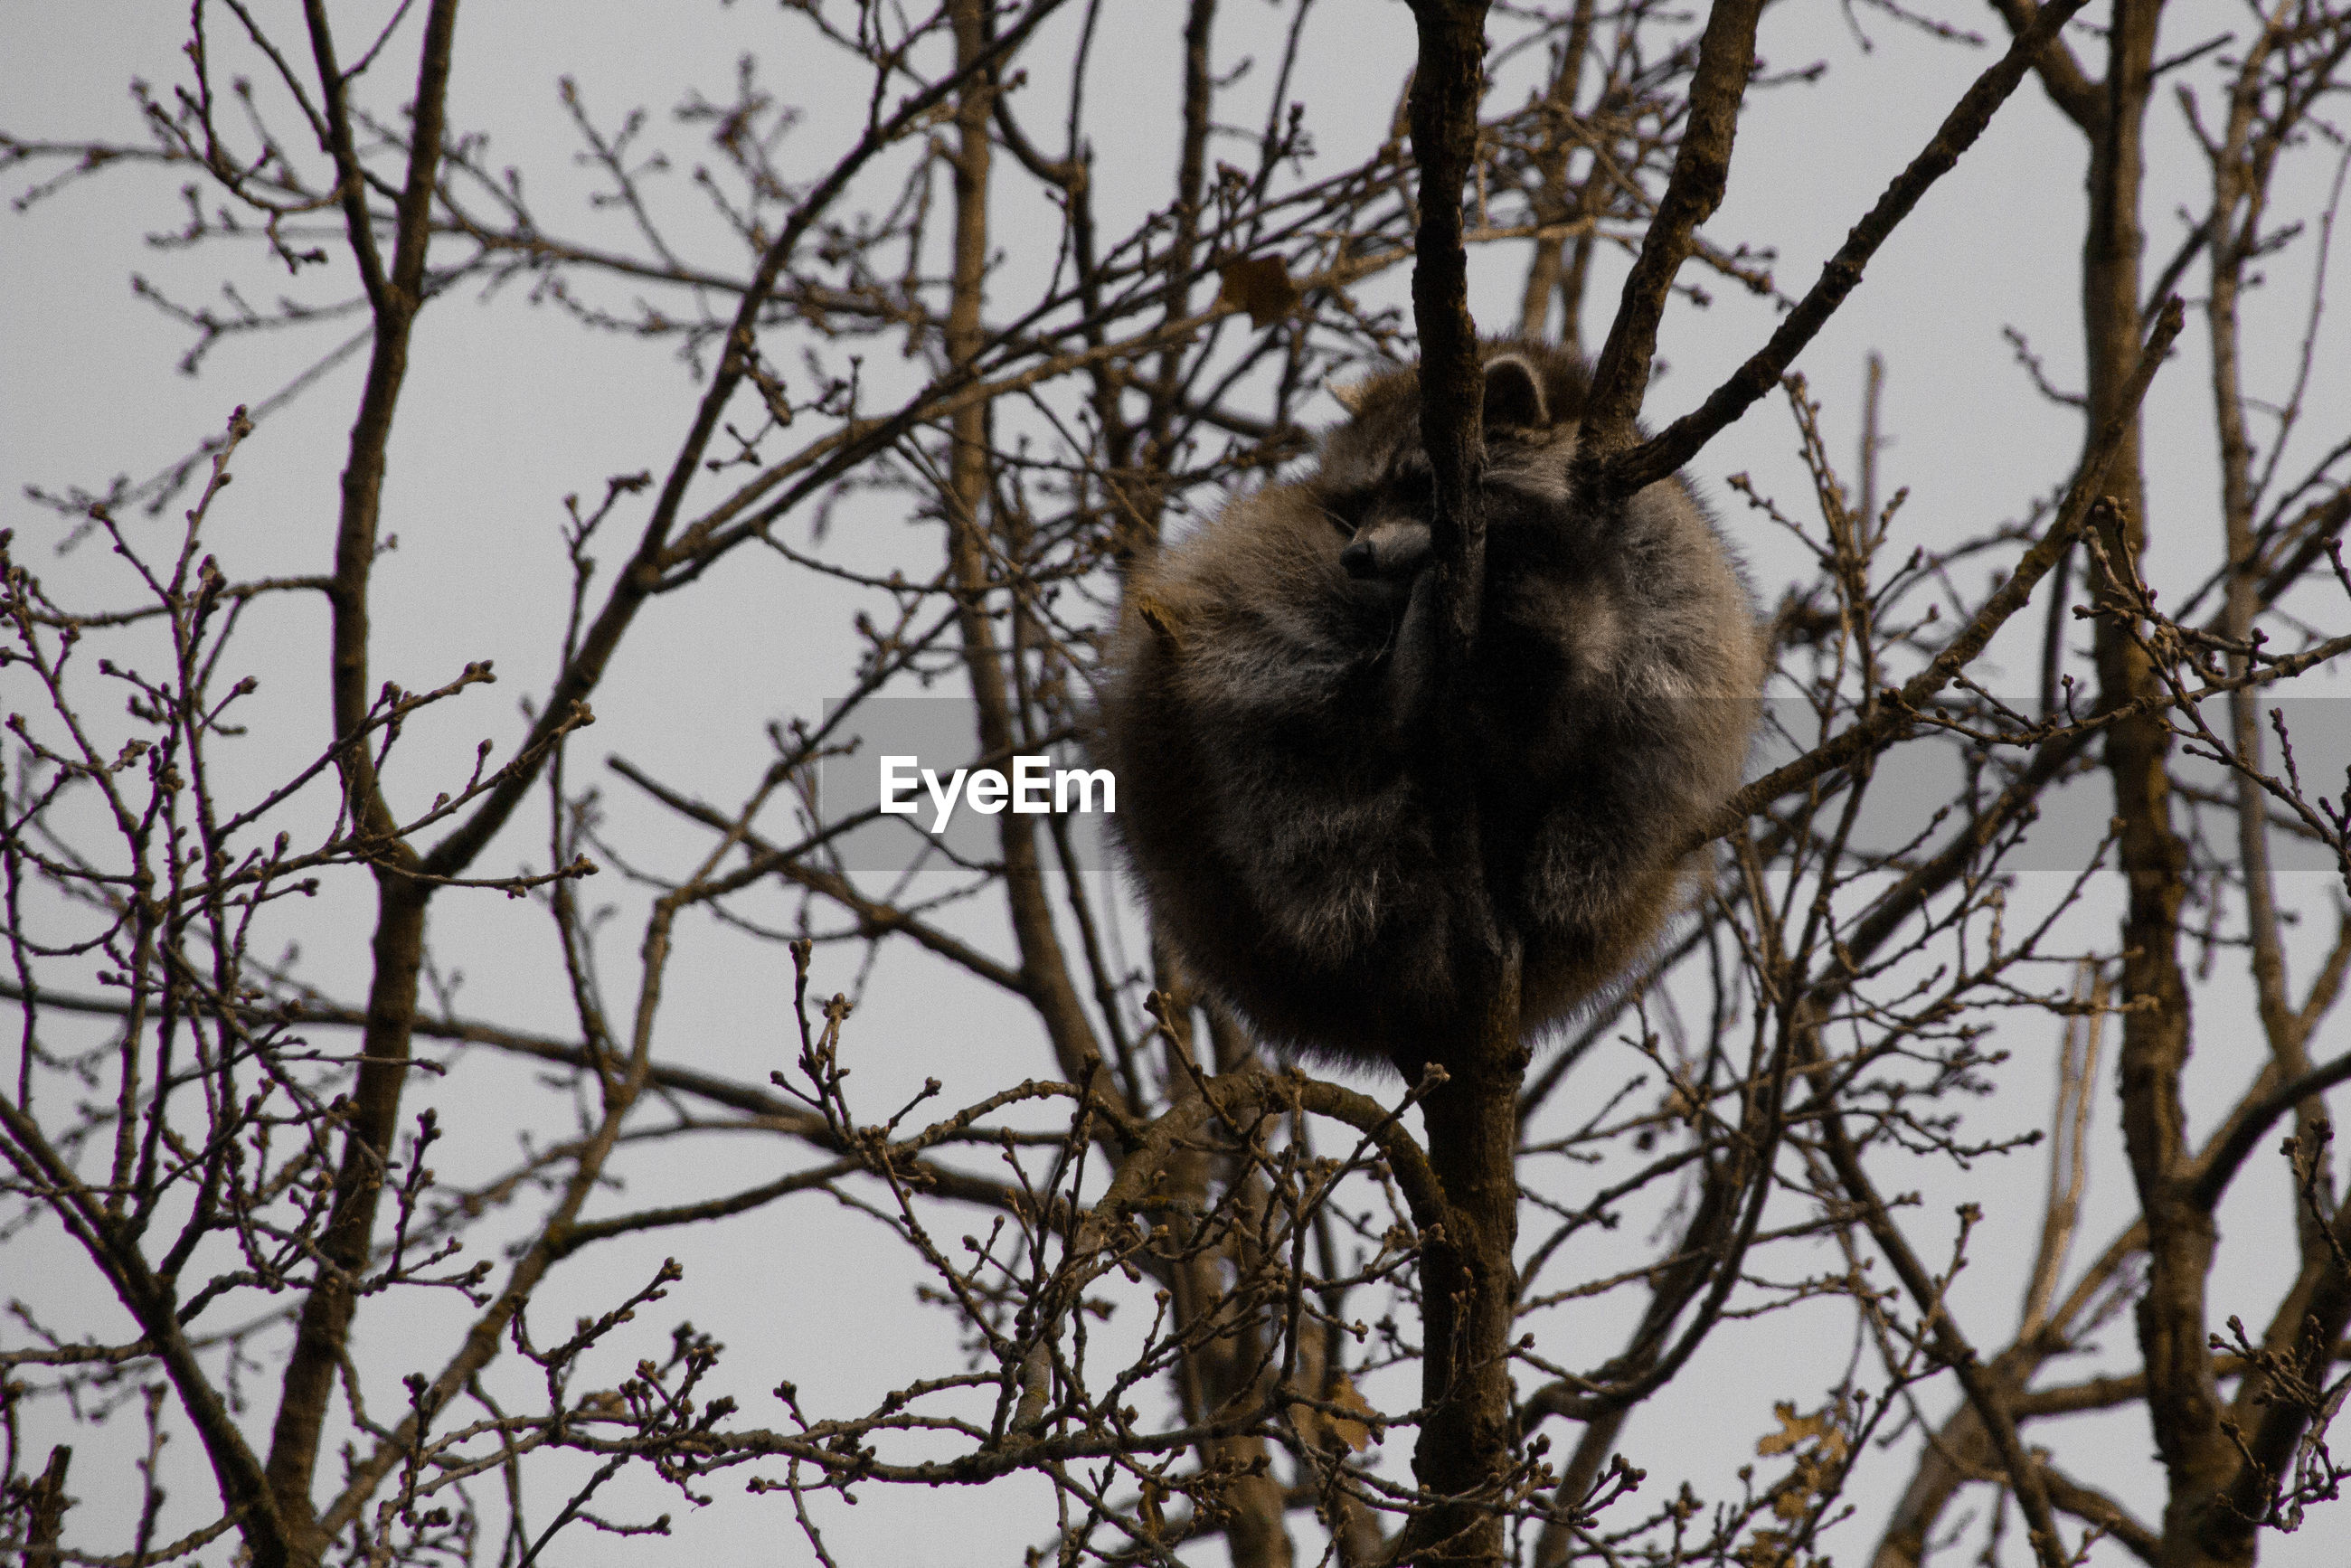 LOW ANGLE VIEW OF MONKEY SITTING ON BARE TREES